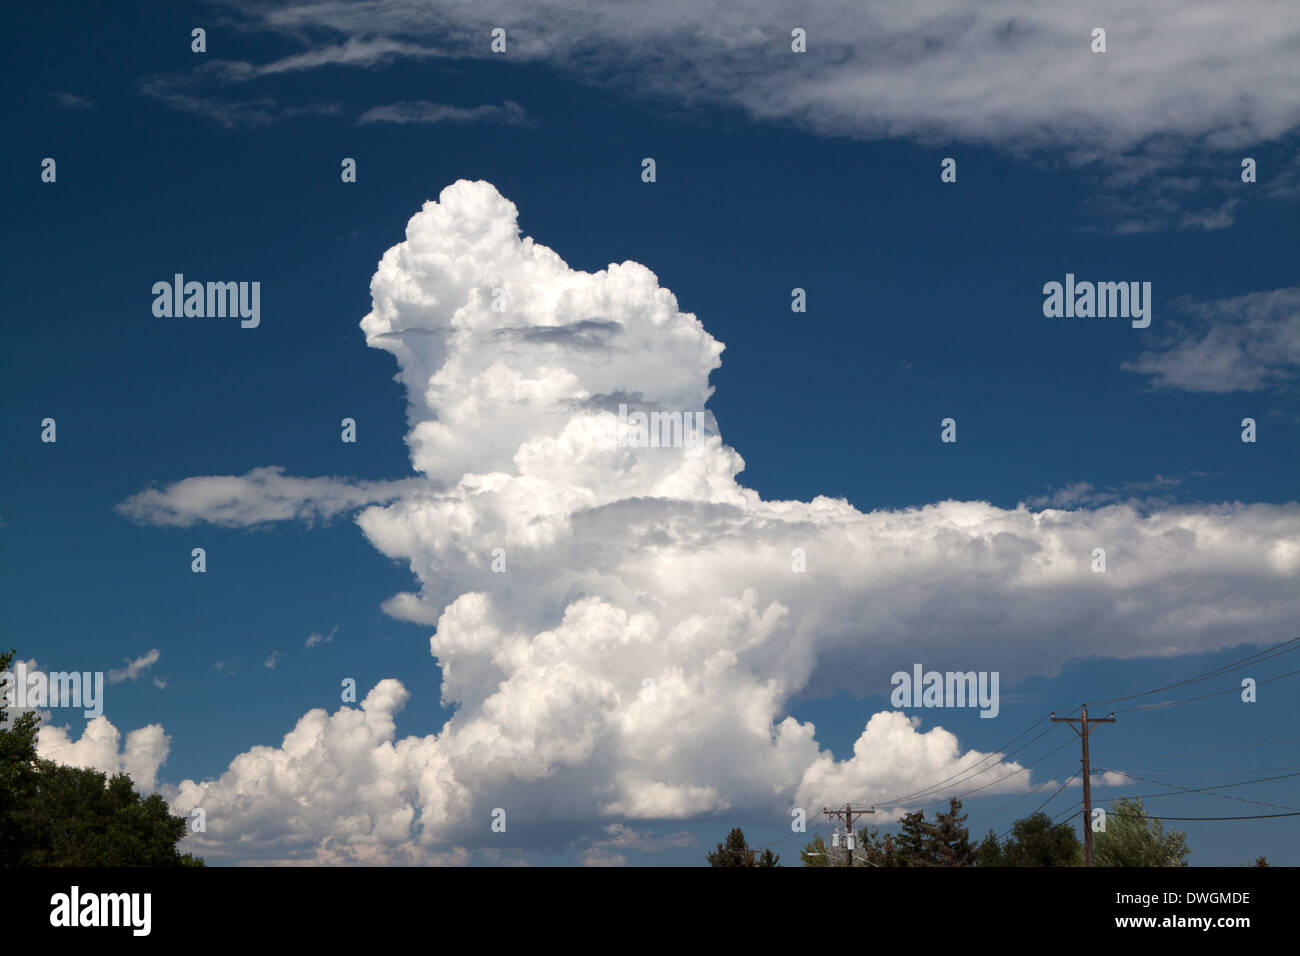 Thunderhead forming in clear sky - Stock Image